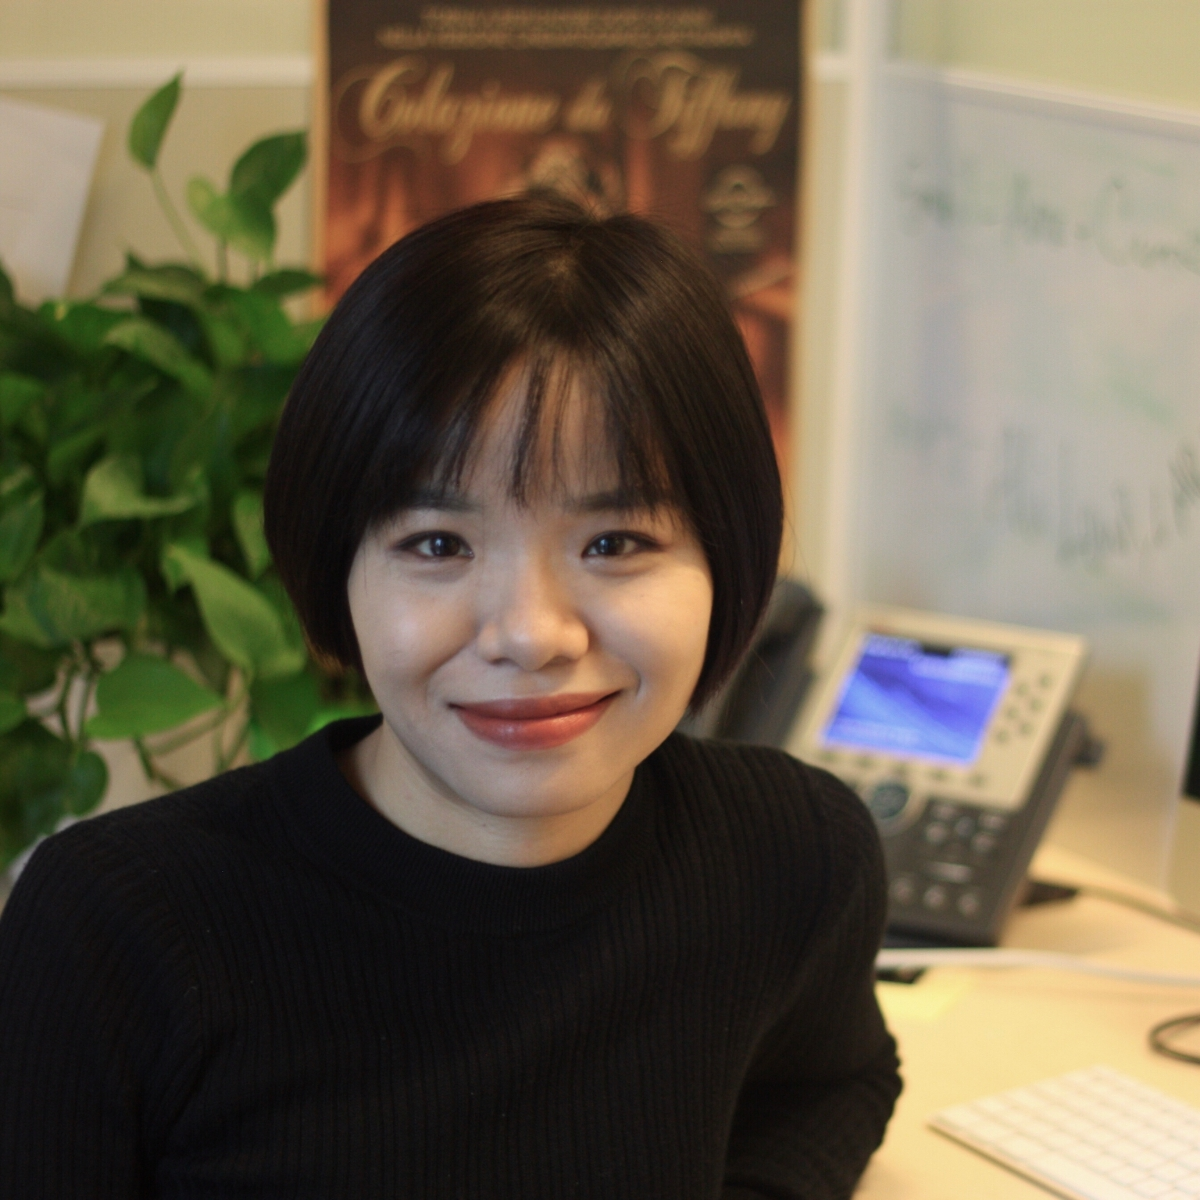 Cinema Studies PhD candidate Zoe Meng Jiang